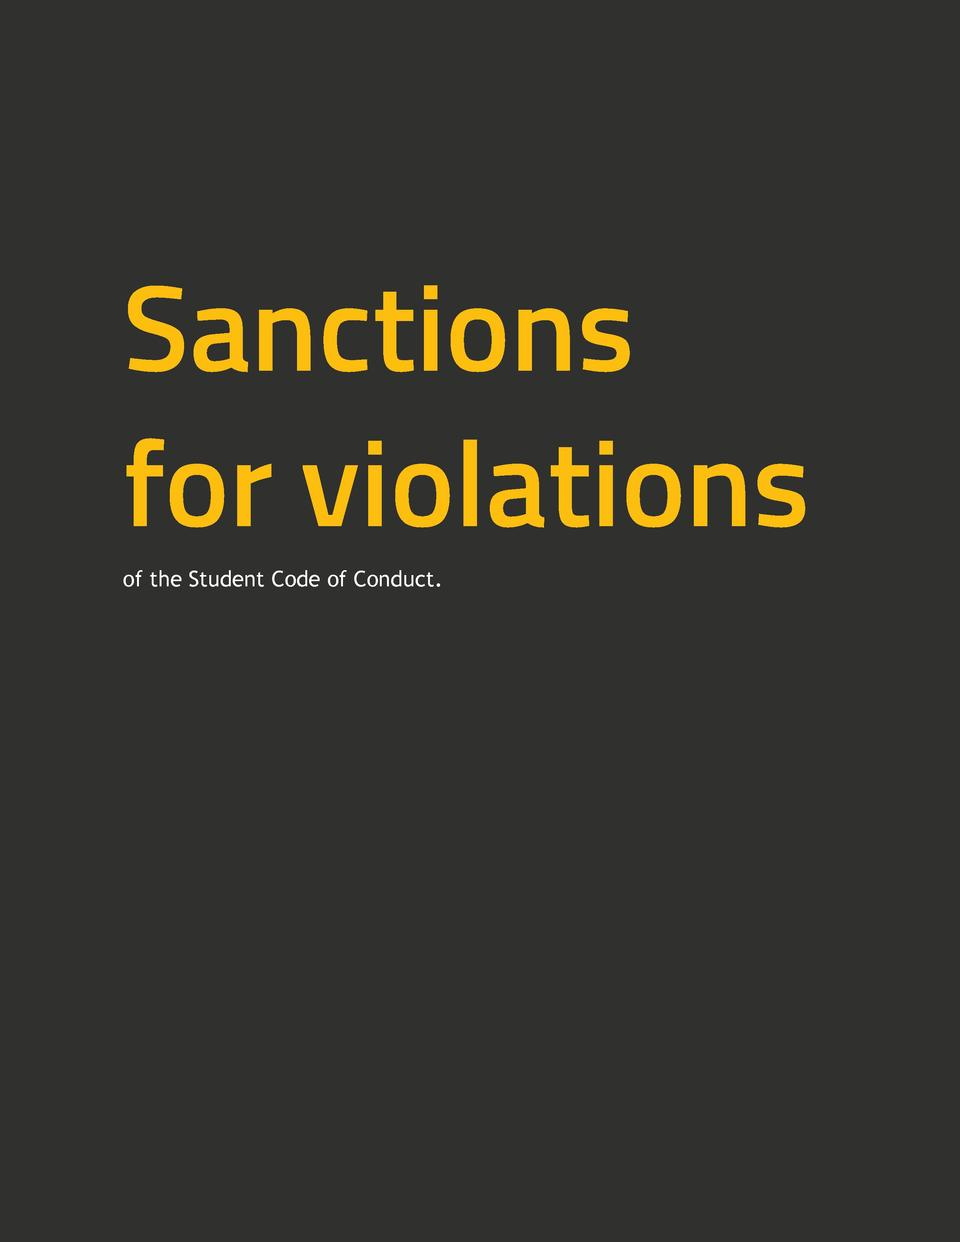 Sanctions for violations of the Student Code of Conduct.